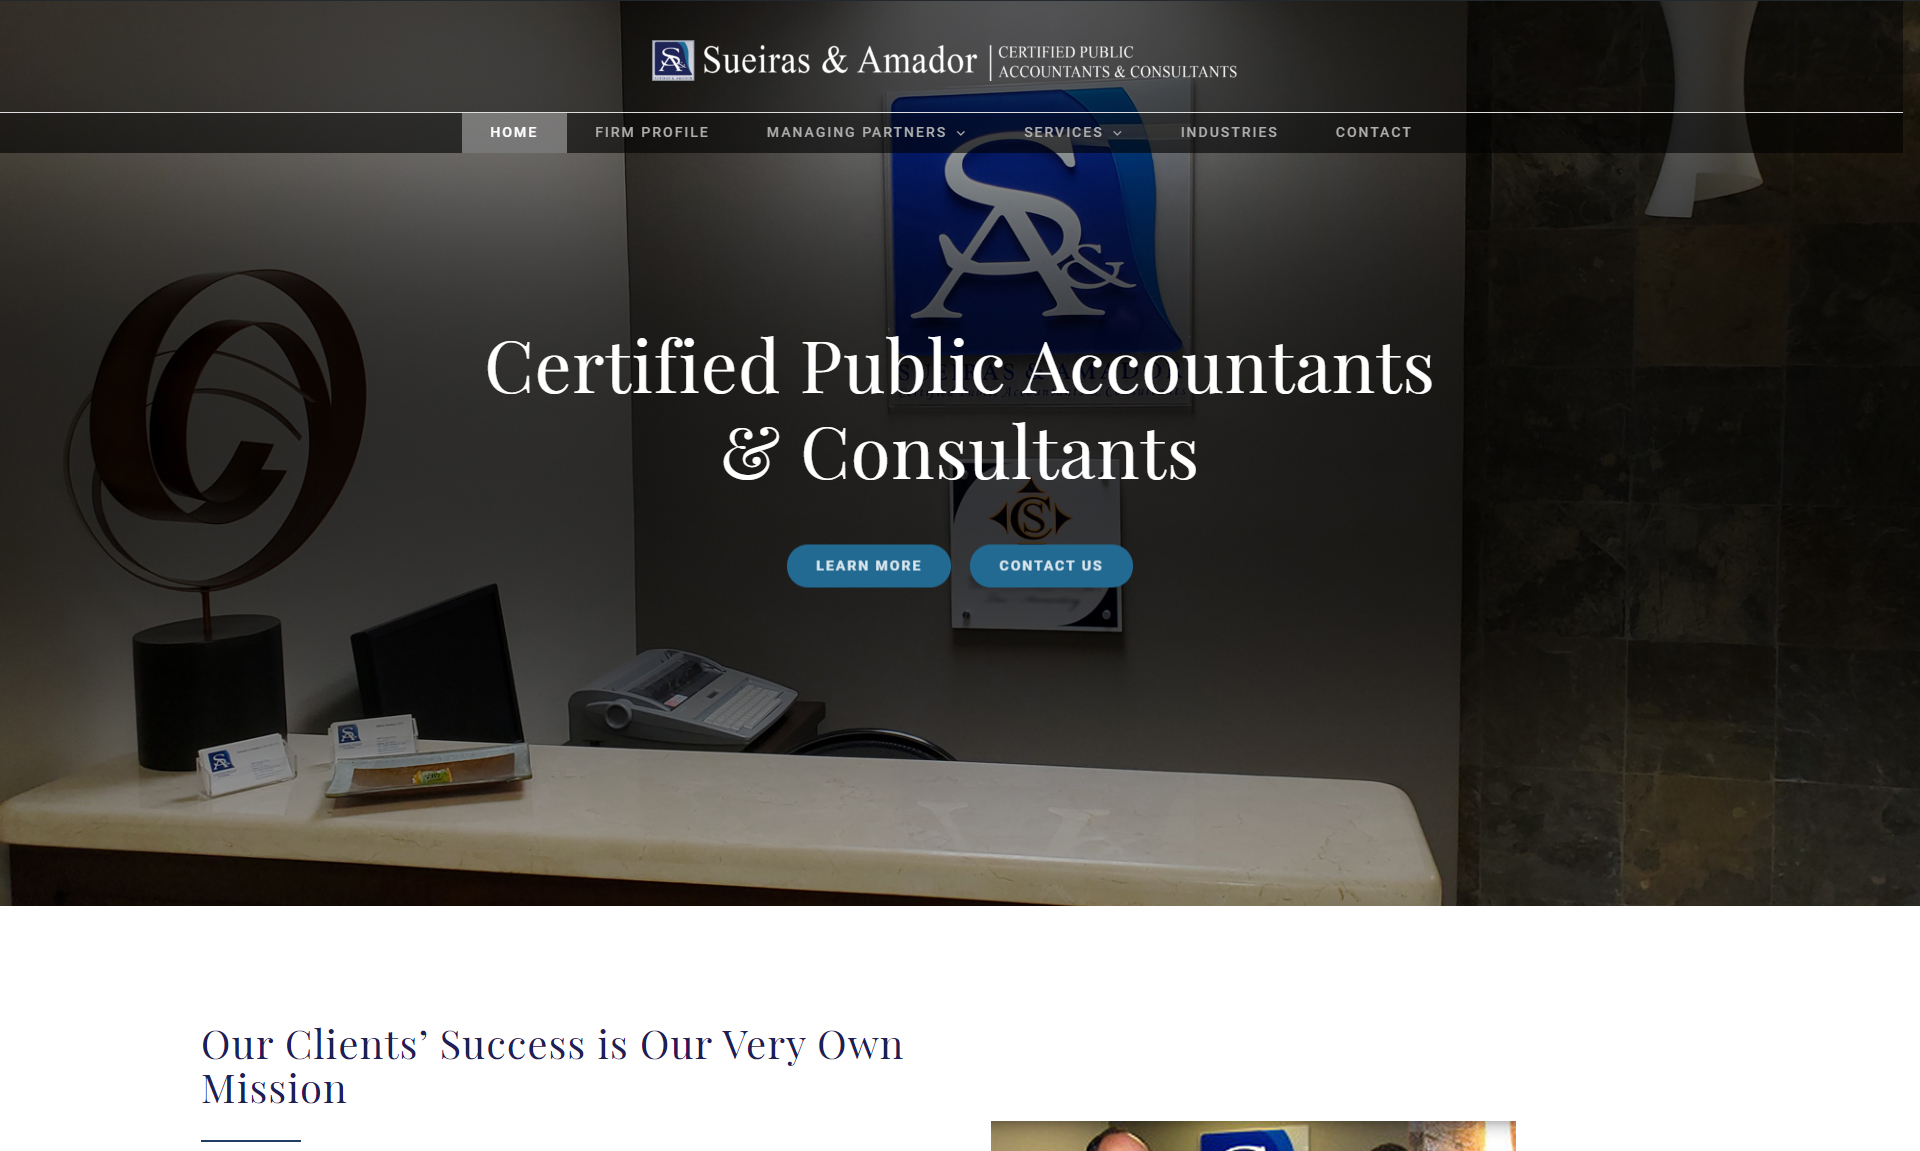 Suieras & Amador | Accounting and Consultants Website